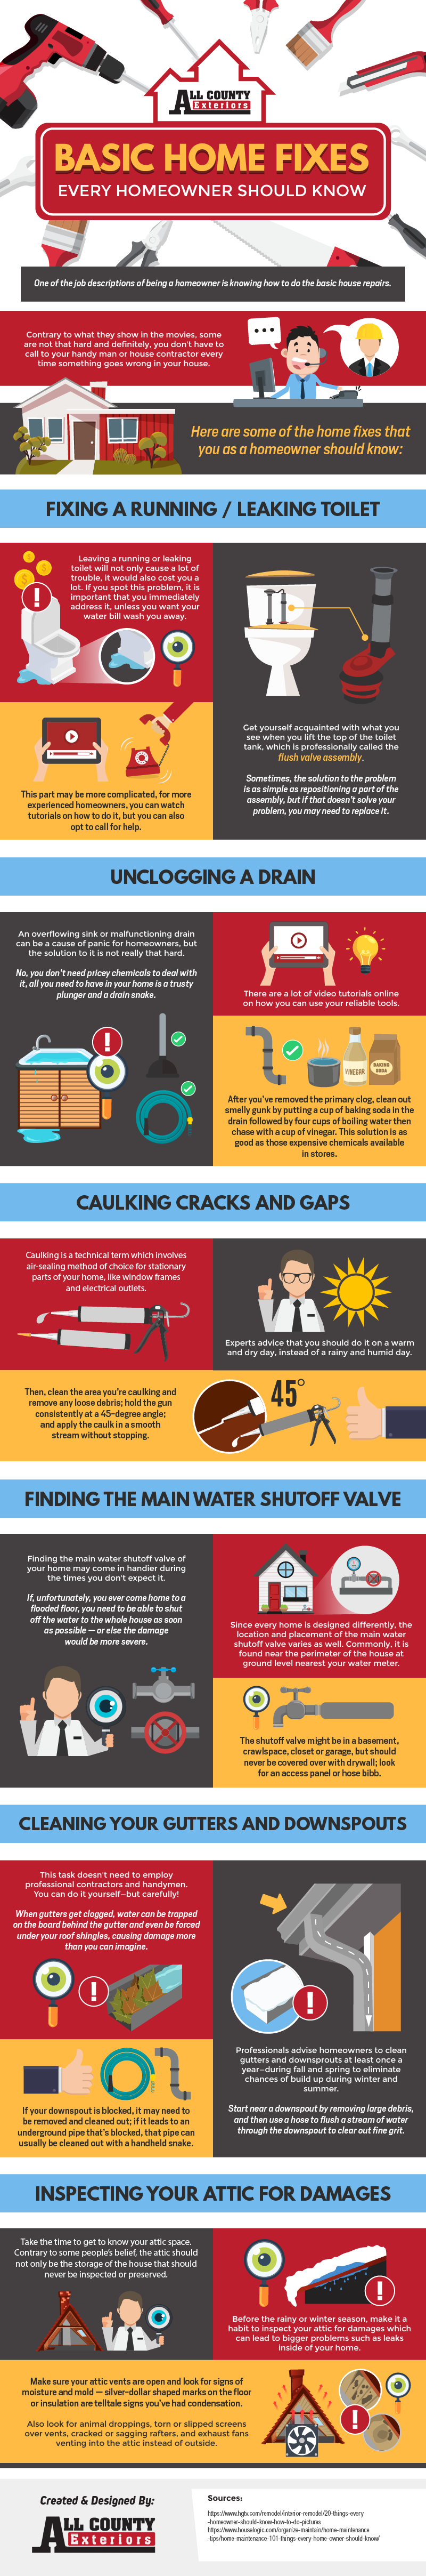 Basic Home Fixes Every Homeowner Should Know - Infographic